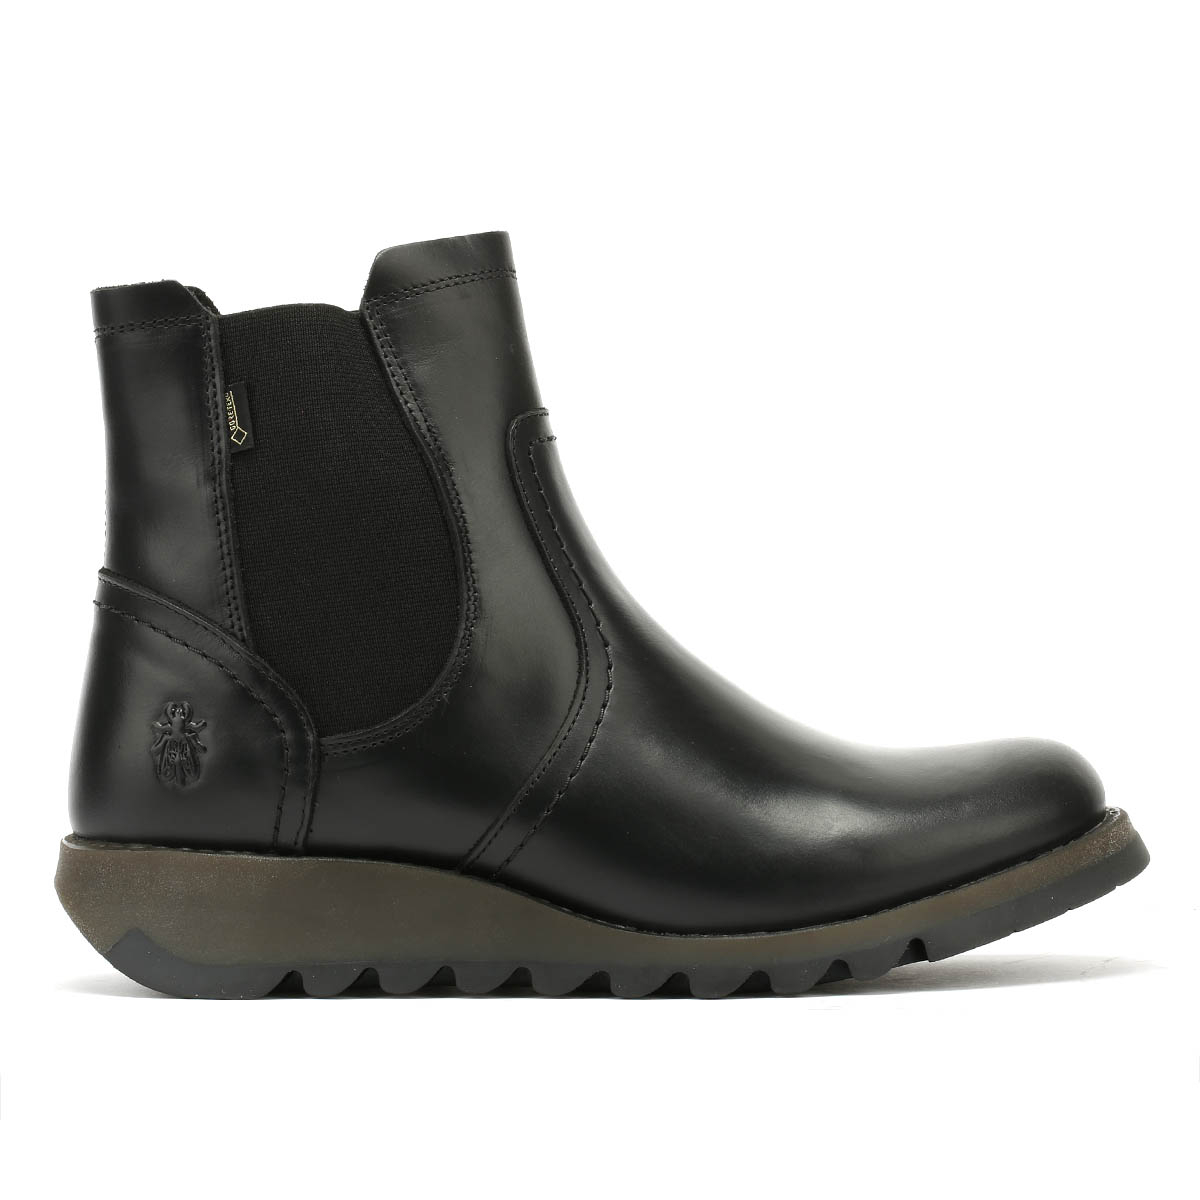 Fly-London-Womens-Boots-Black-Scon-Rug-Ladies-Leather-Winter-Ankle-Shoes thumbnail 12